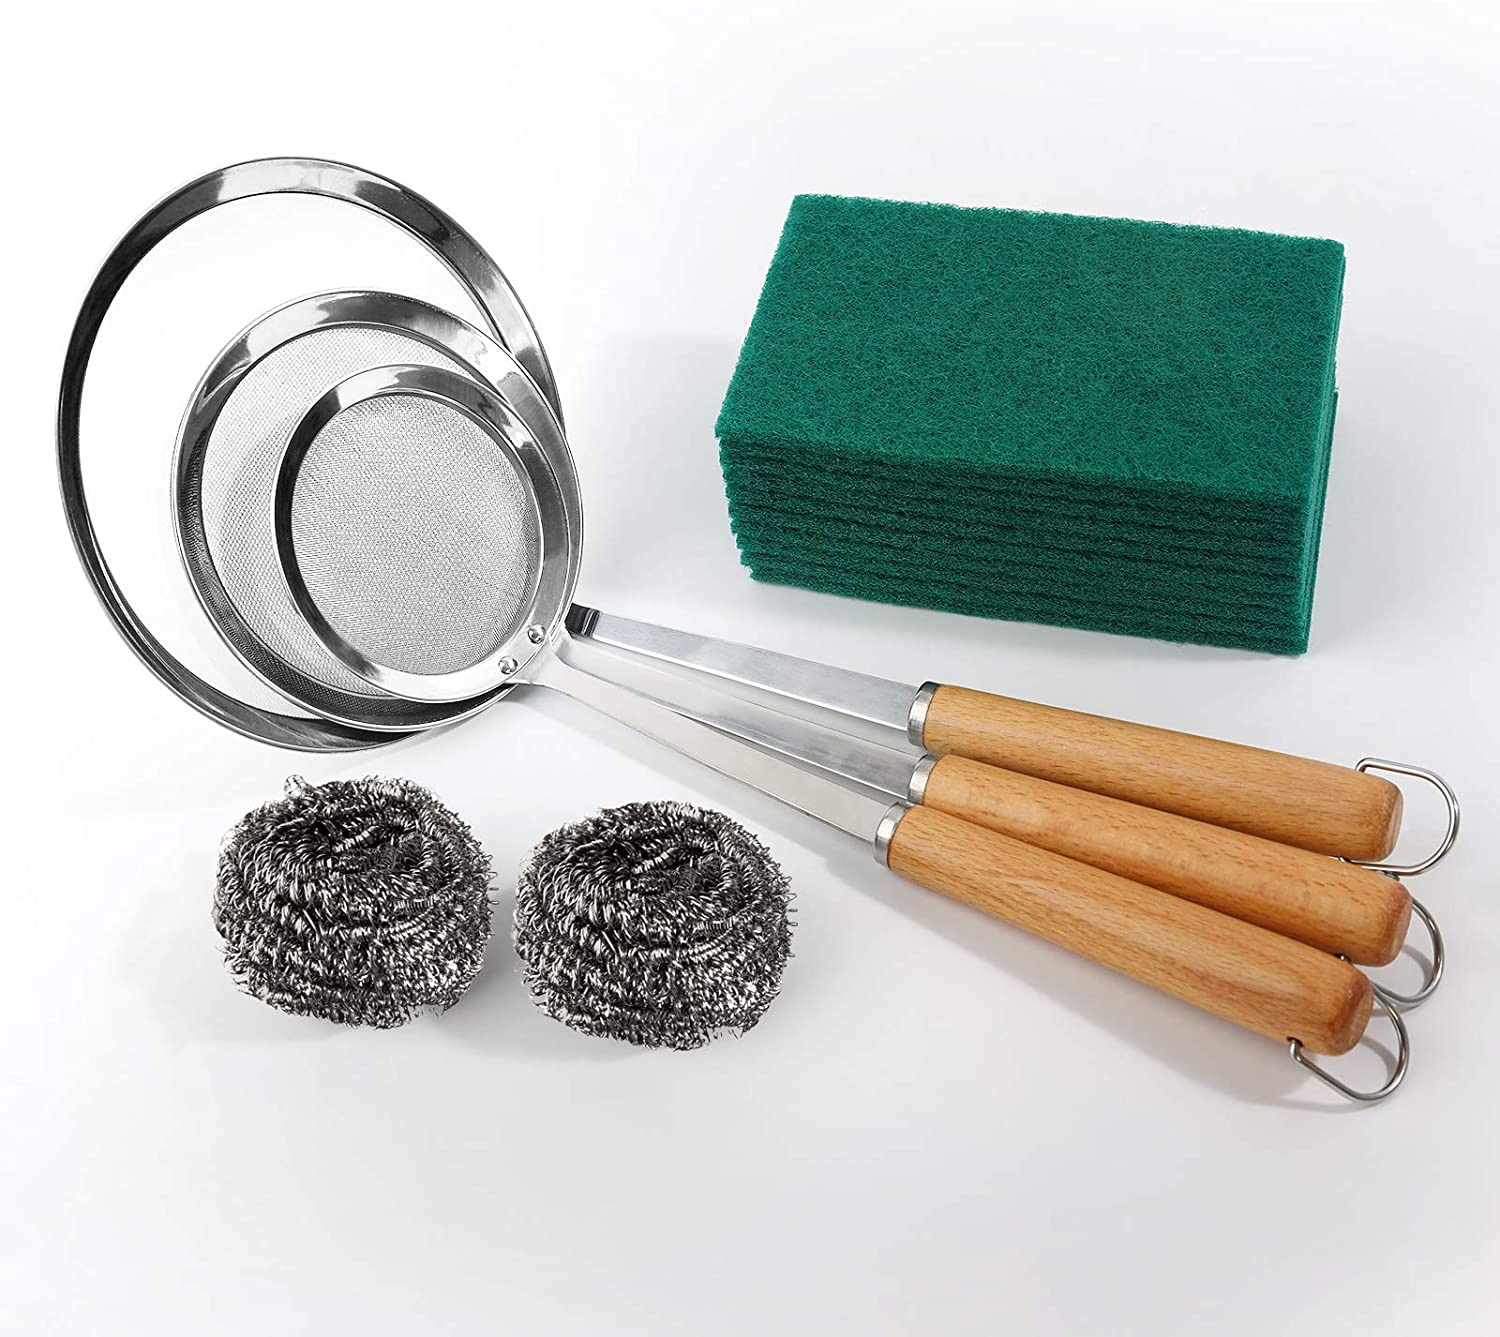 Fine Mesh Strainer Set of 3, Stainless Steel Strainers, Sieves, Sifters, Colander Kitchen Strainer Fine Mesh for Food Preparation, Plus 2 Kitchen Stainless Steel Scrubbers and 10 Heavy Duty Scour Pads